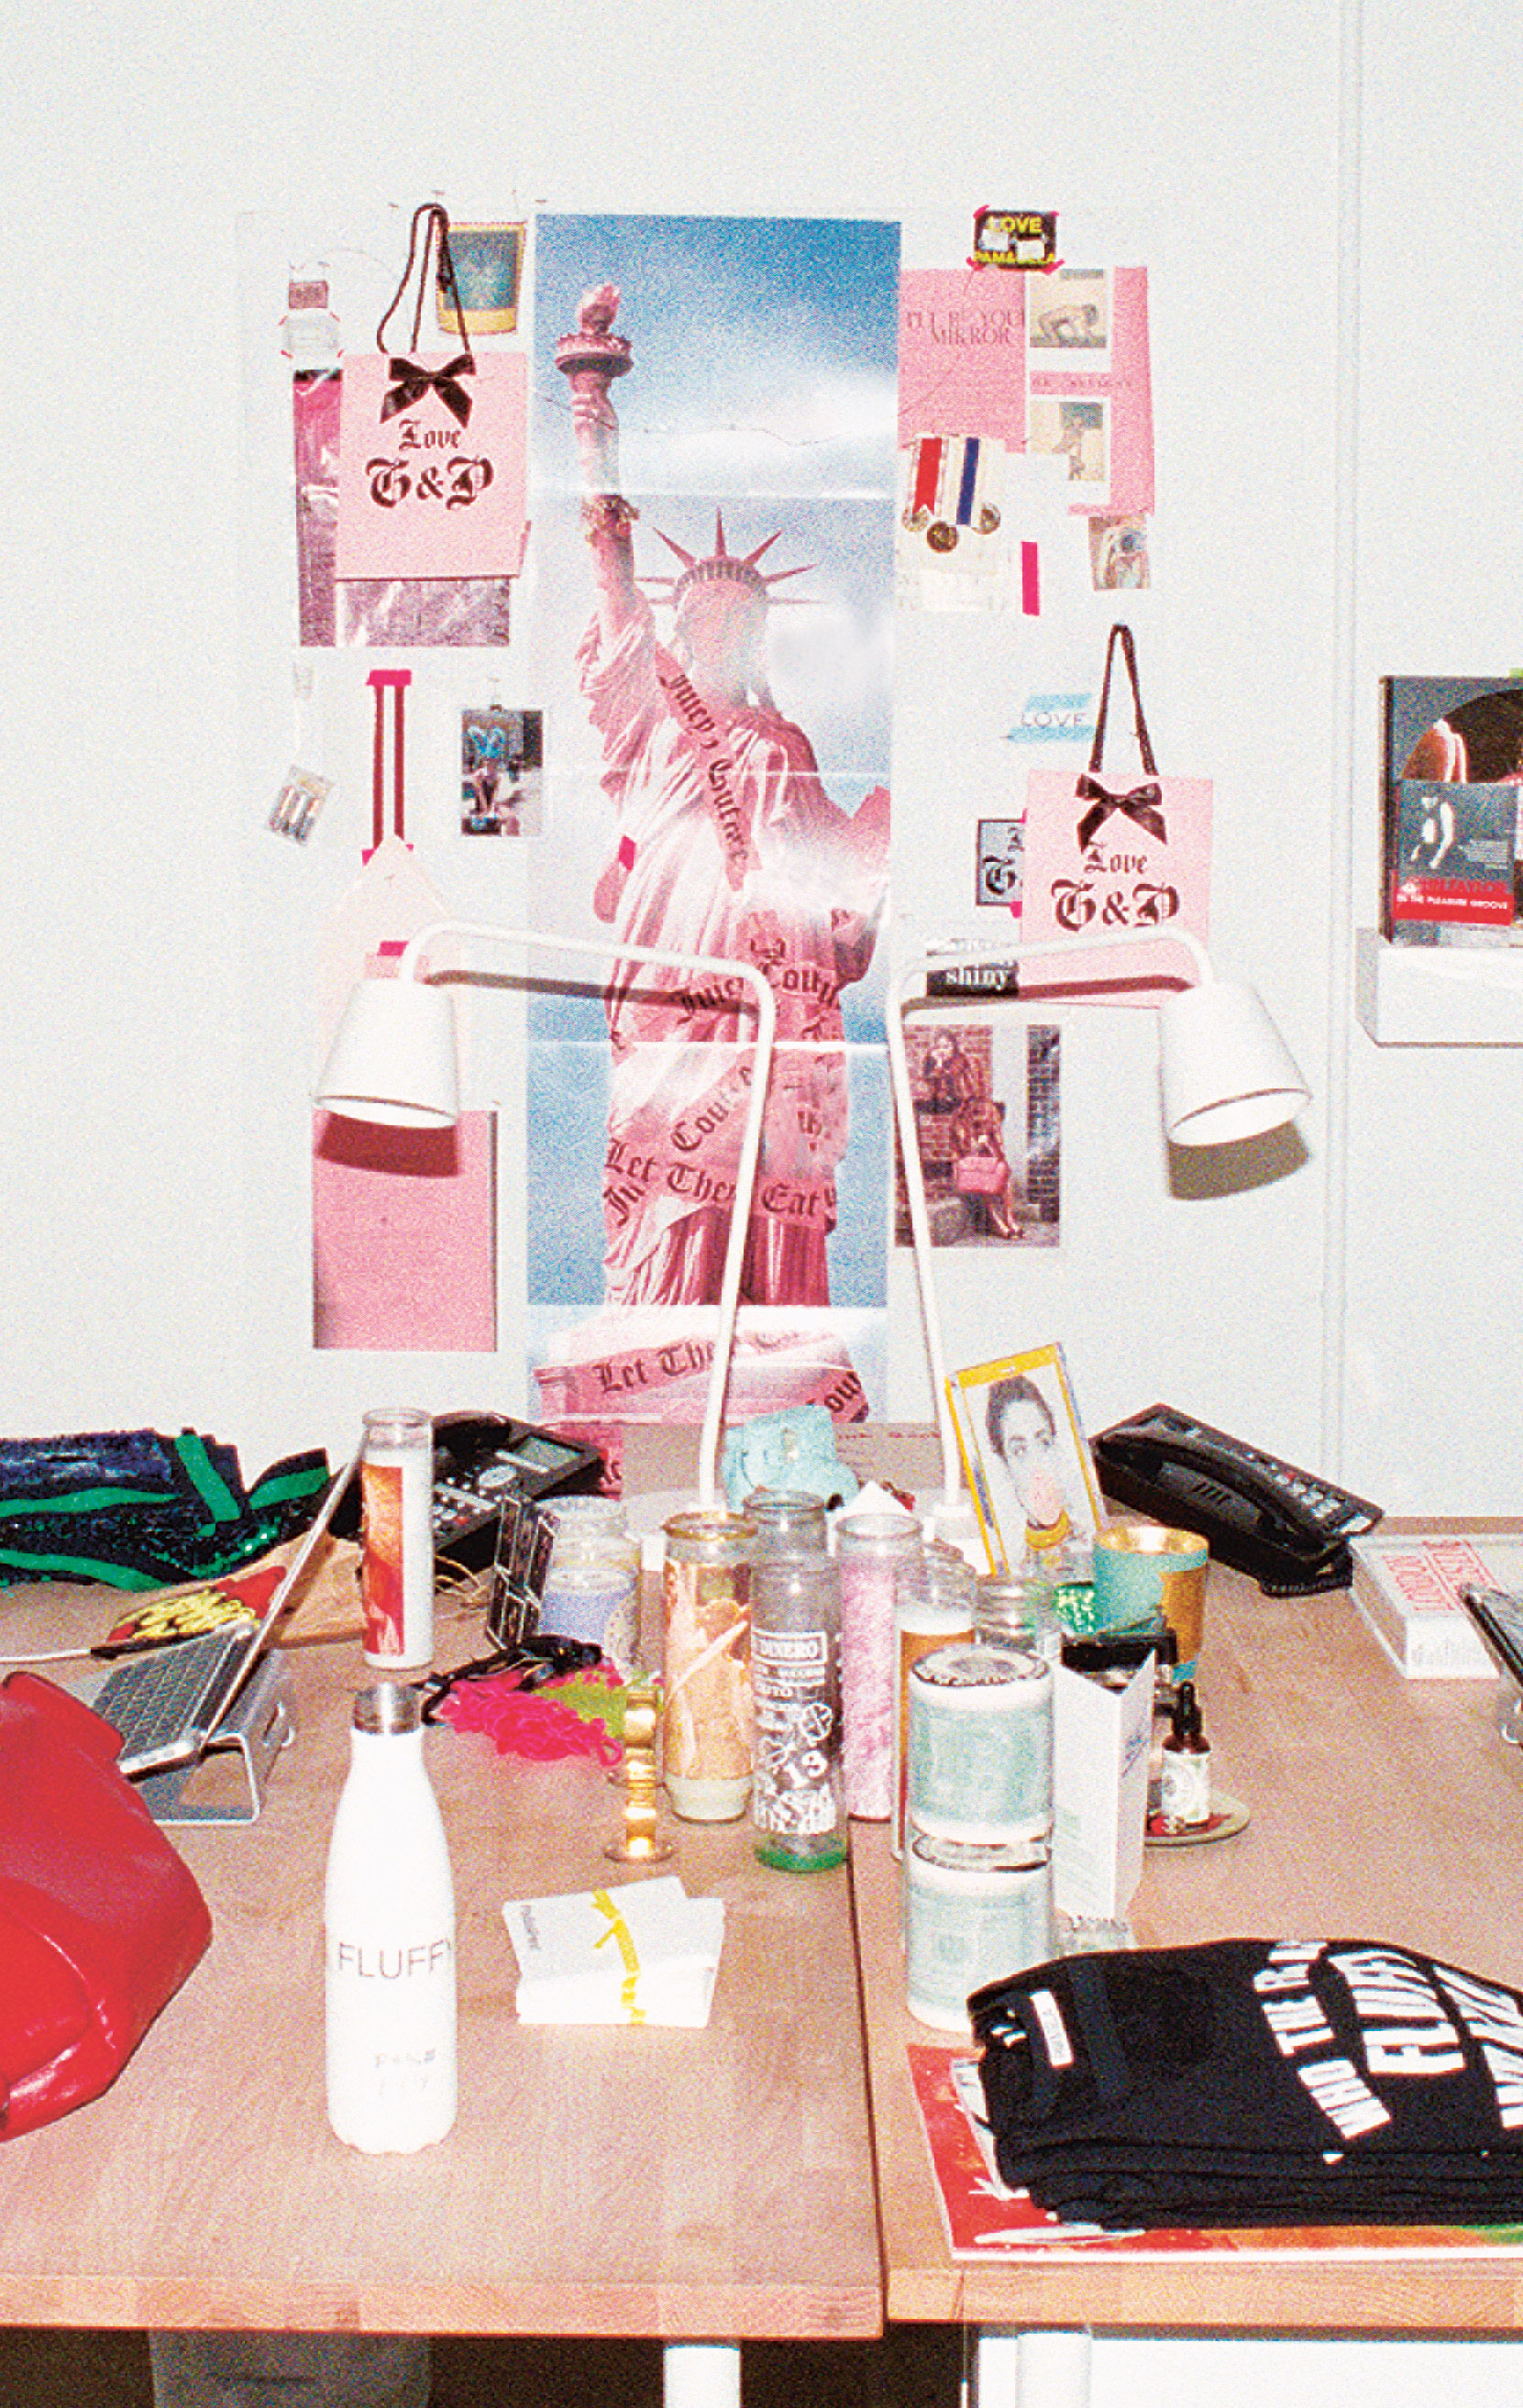 Inside Pam and Gela's colorful studio. Photograph by Cameron McCool. From Fashion in LA